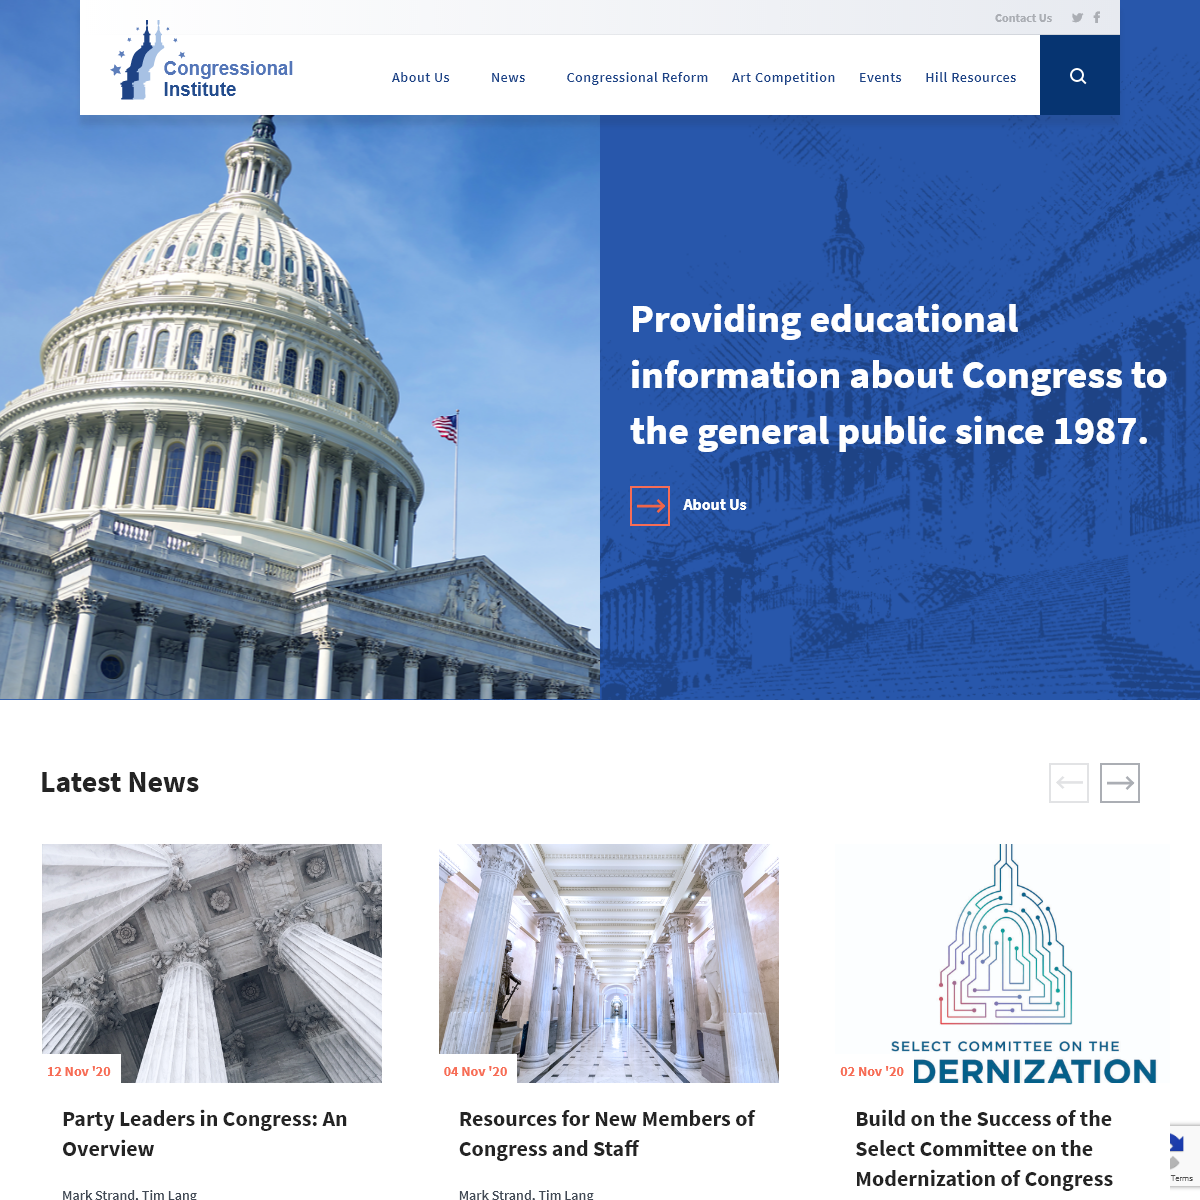 Congressional Institute – Providing educational information about Congress to the general public since 1987.